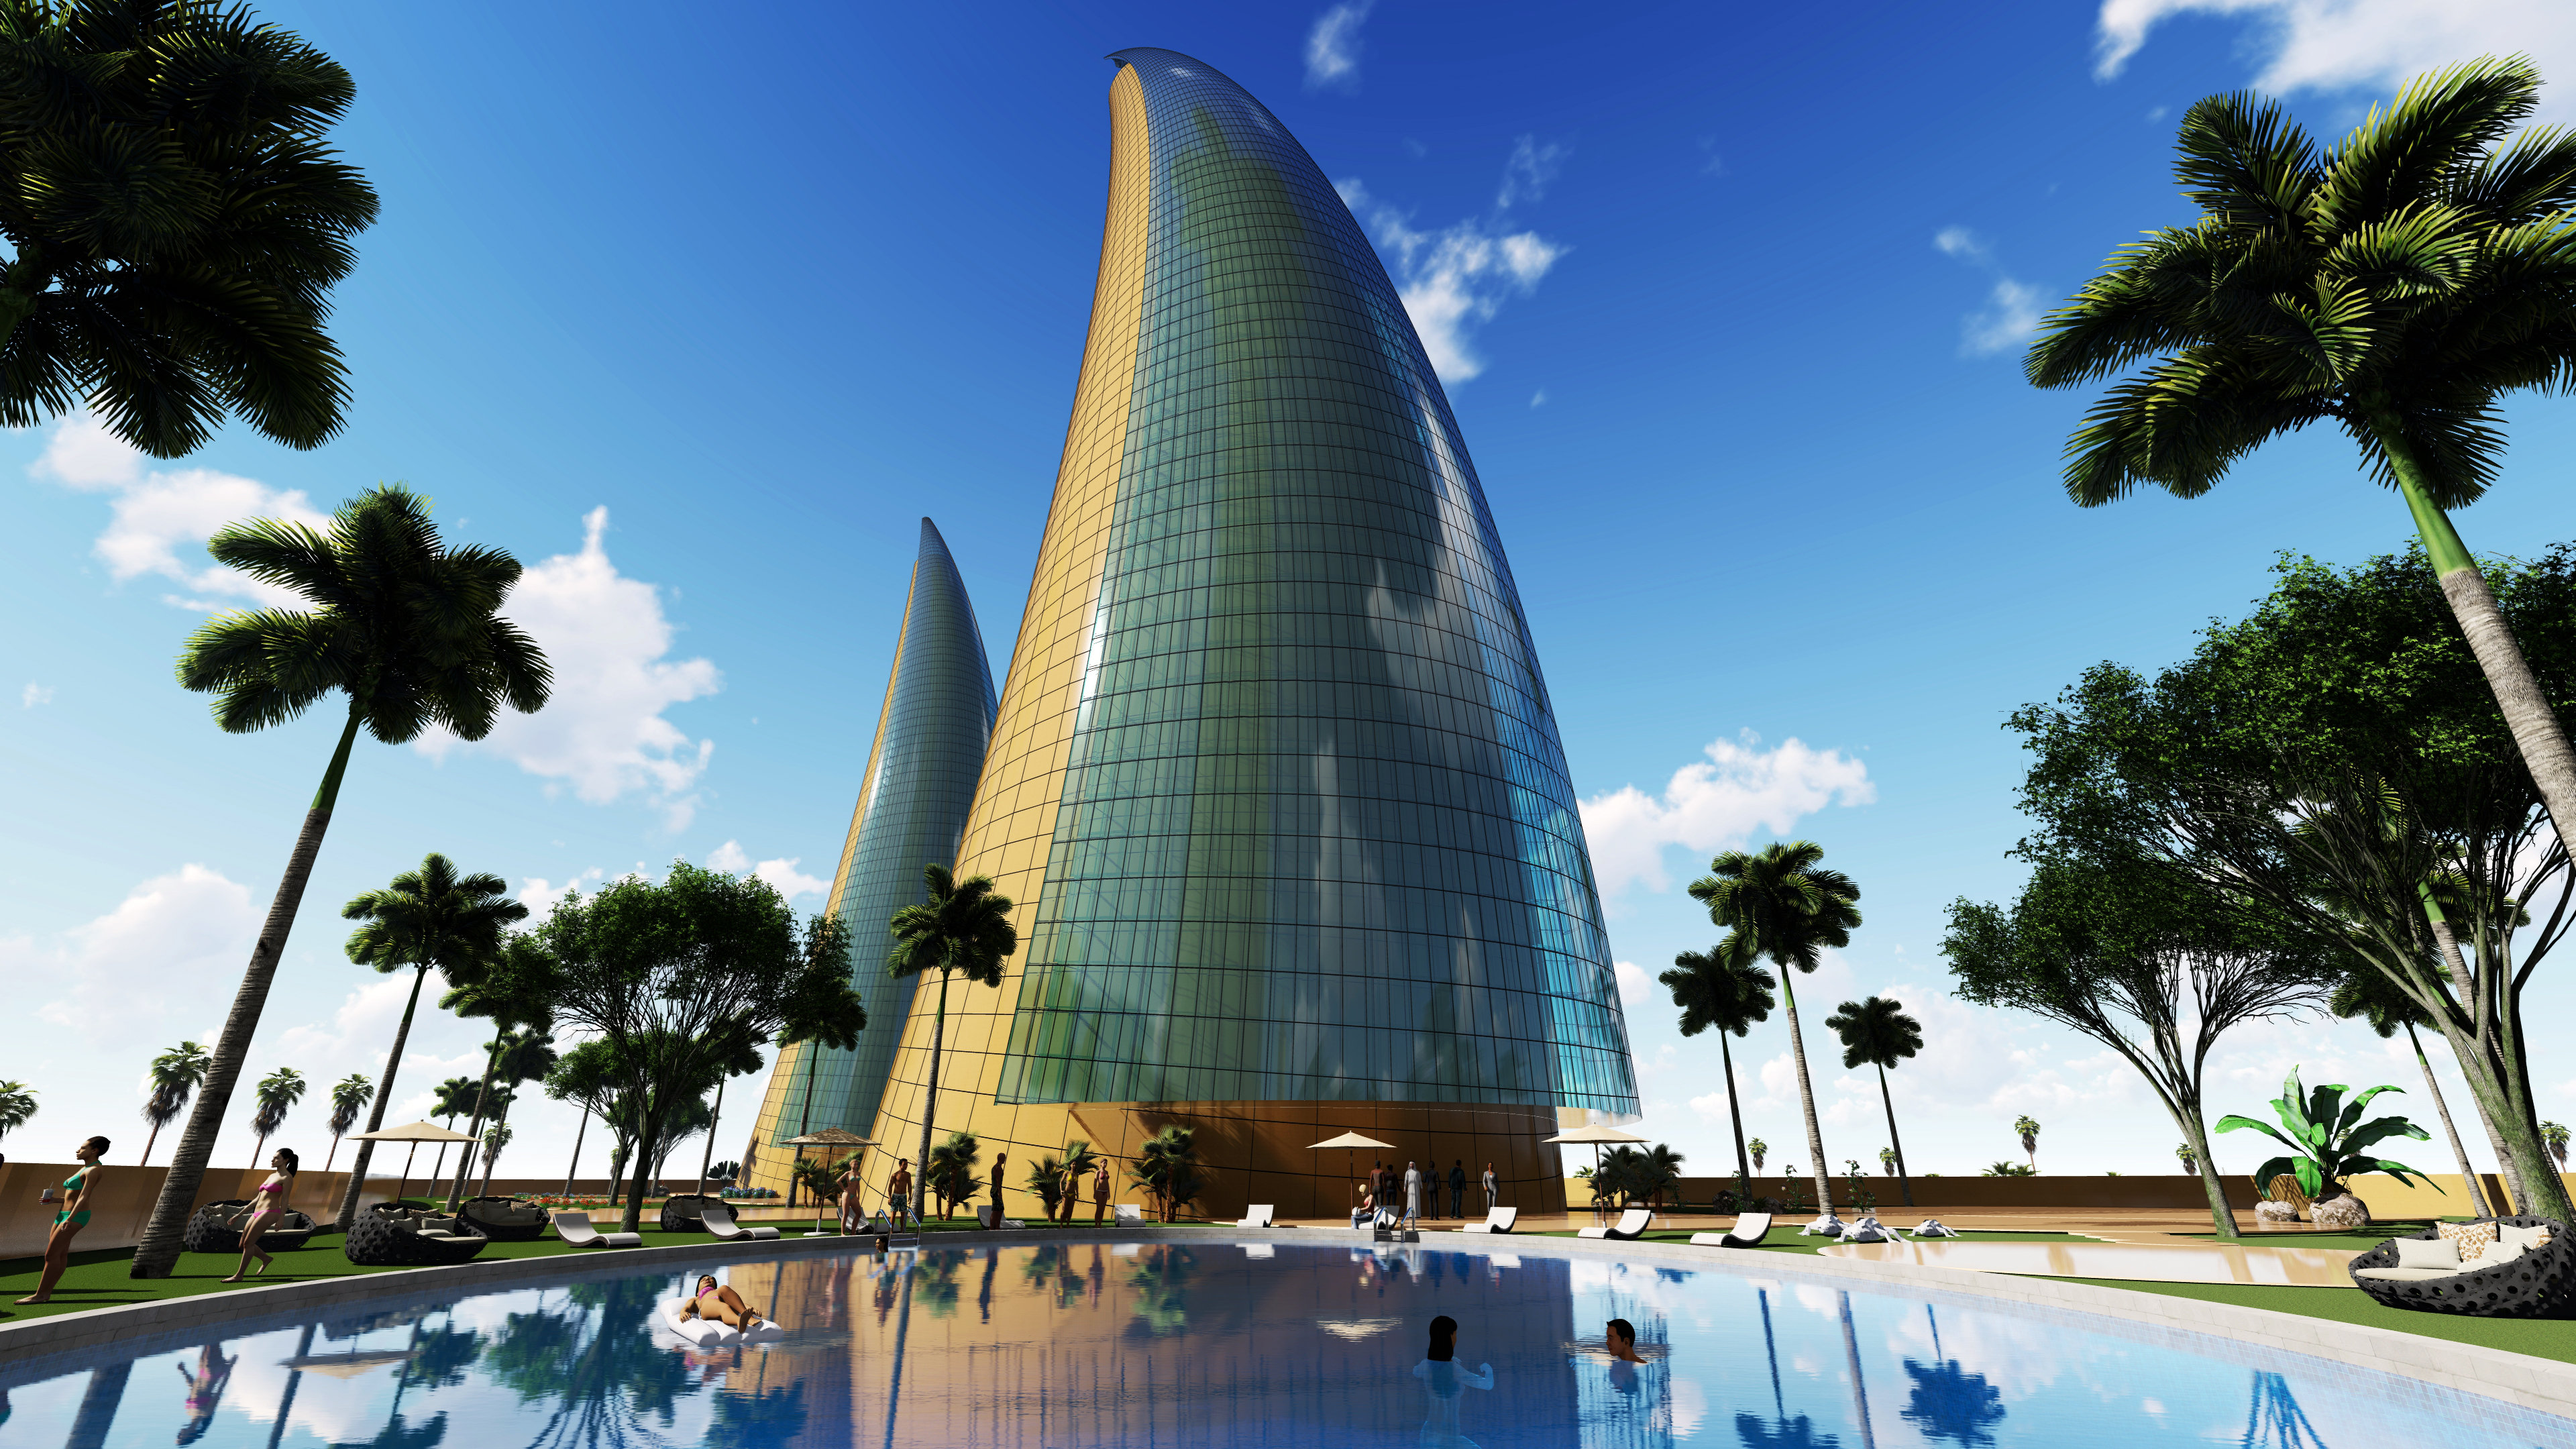 Horn Towers design by Amedee Santalo.